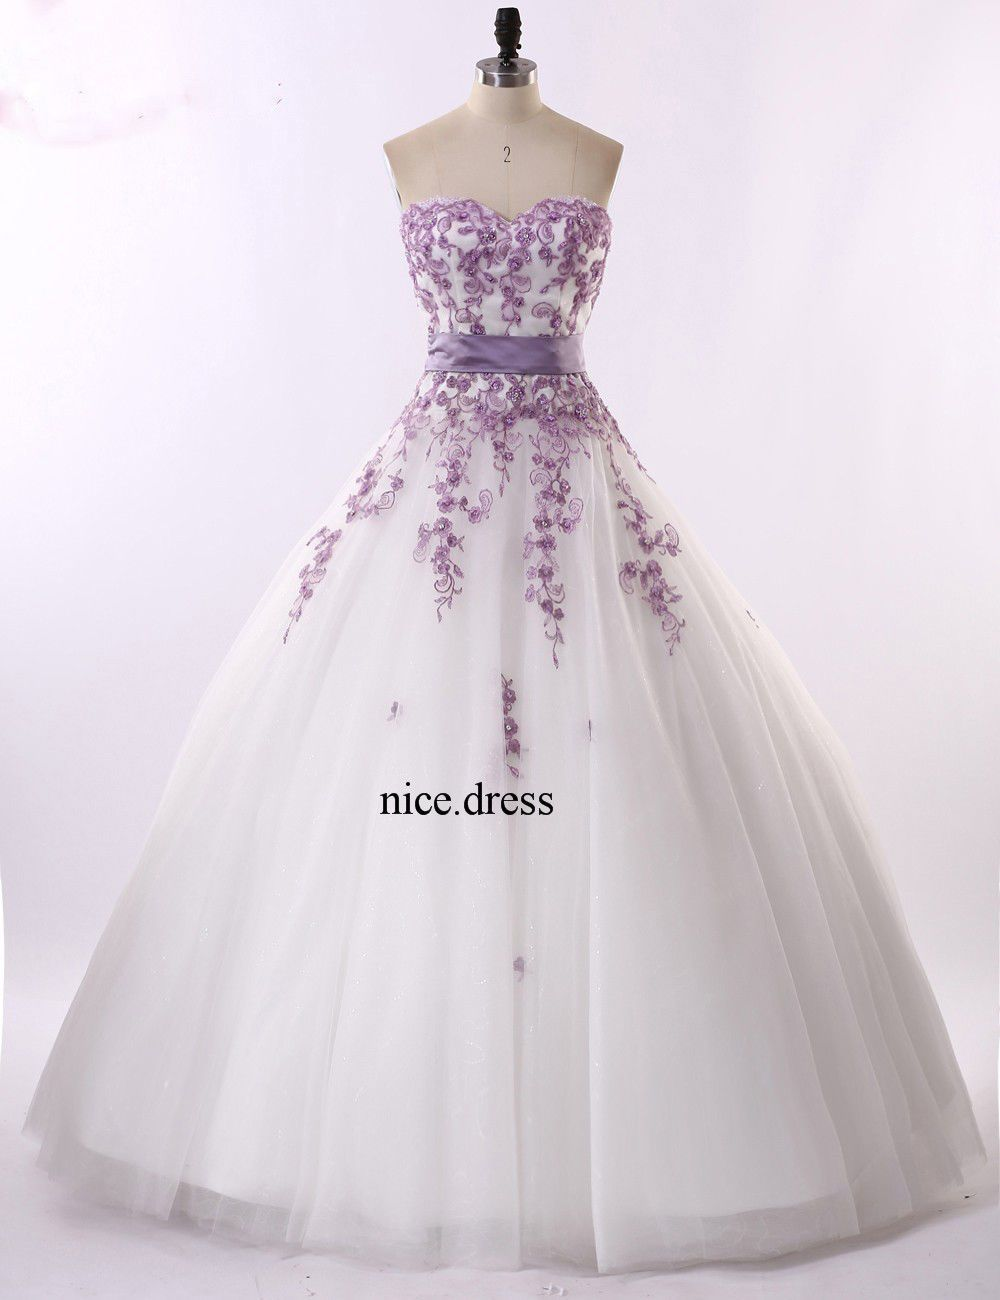 Hs prom dress bridal ball gown purple appliques wedding dress